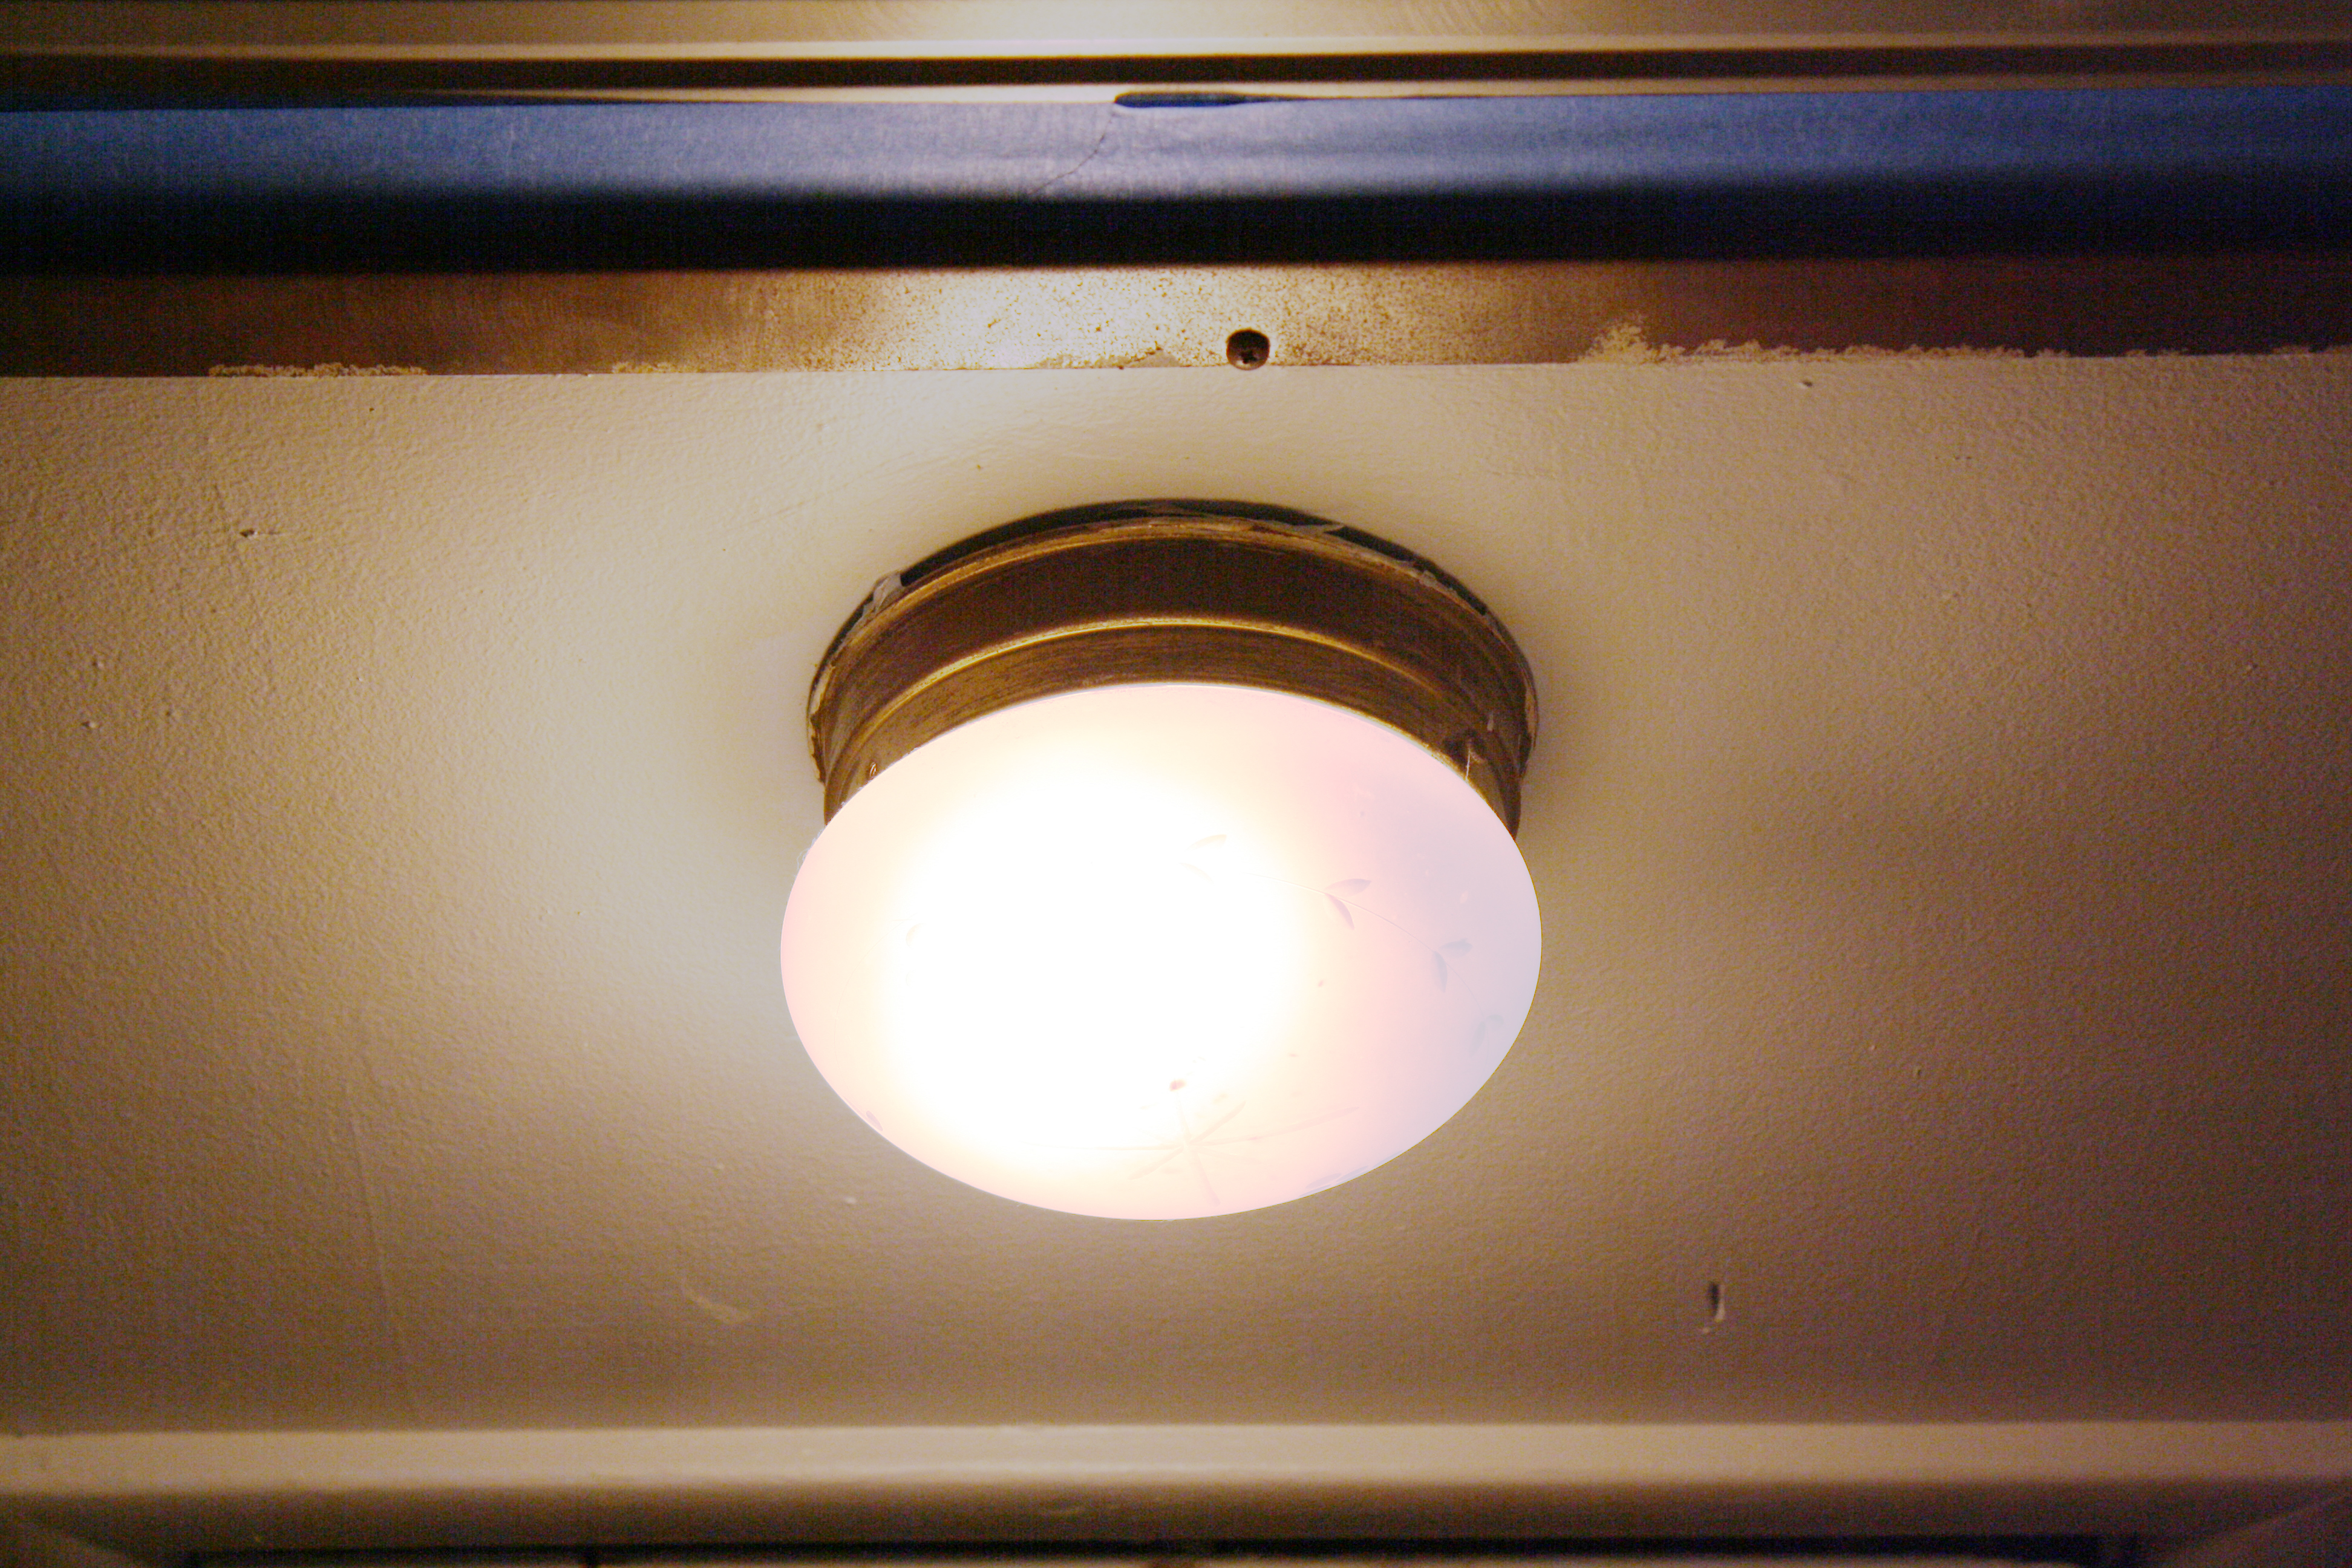 how to replace a light fixture rosemary on the tv